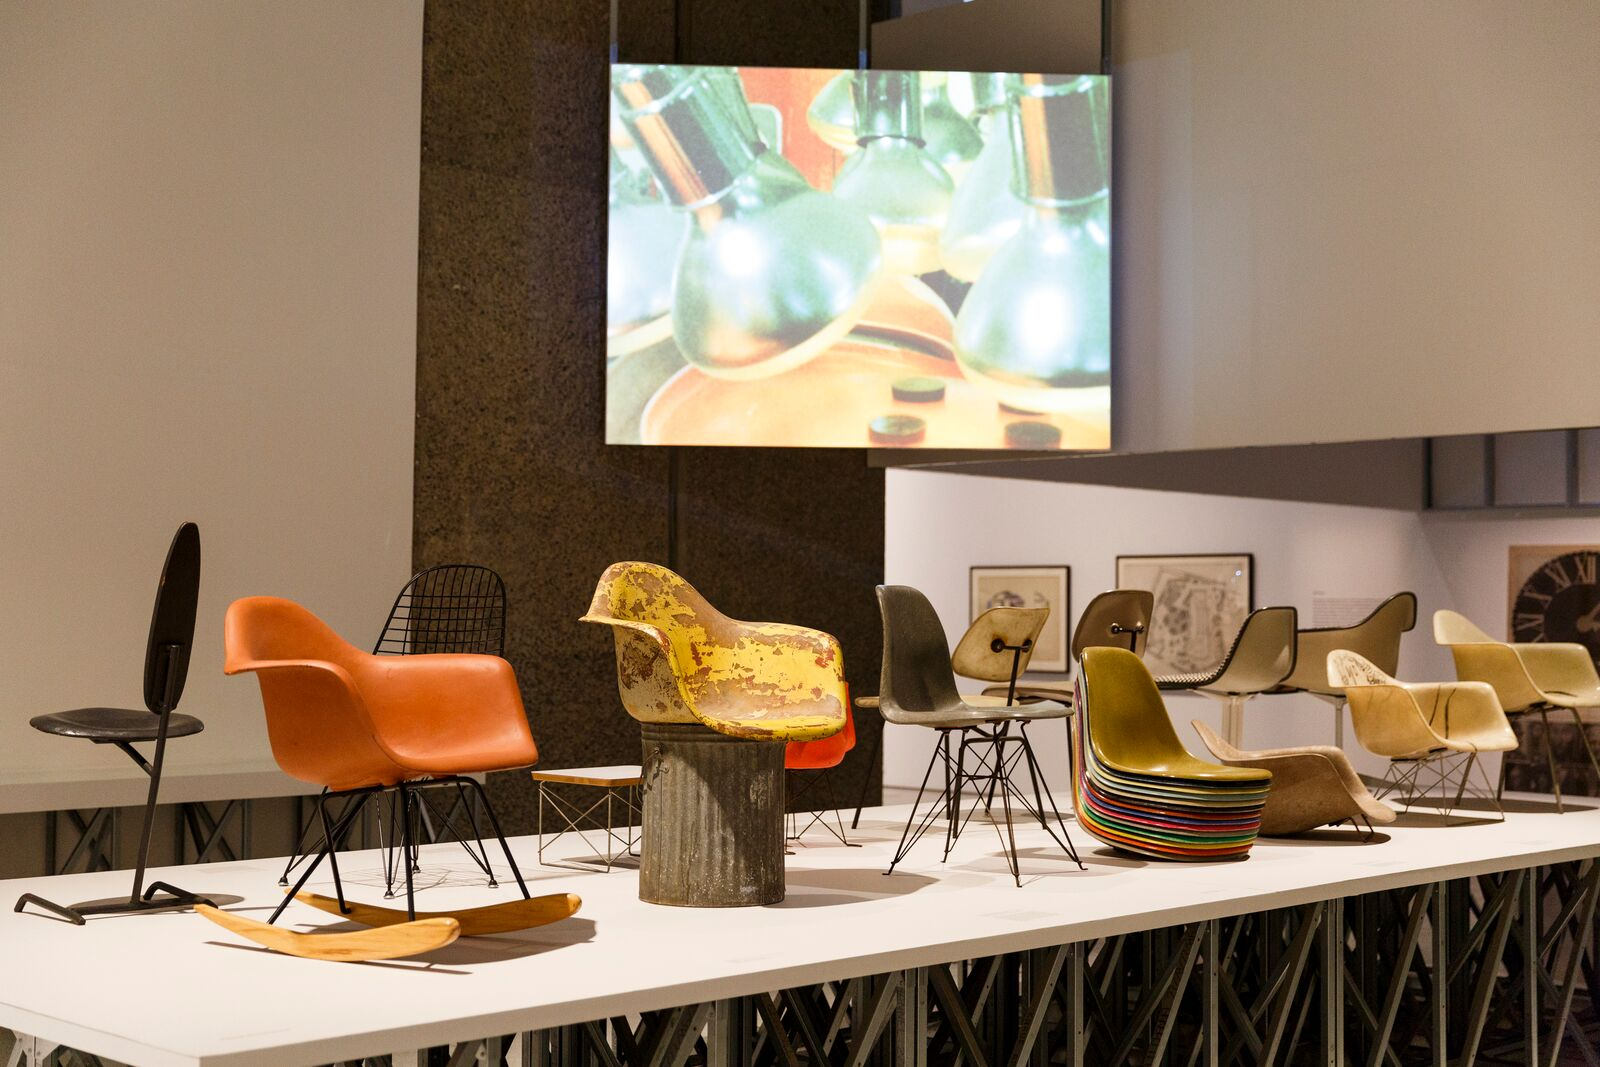 Ten things to see at The World of Charles and Ray Eames - Creative Review